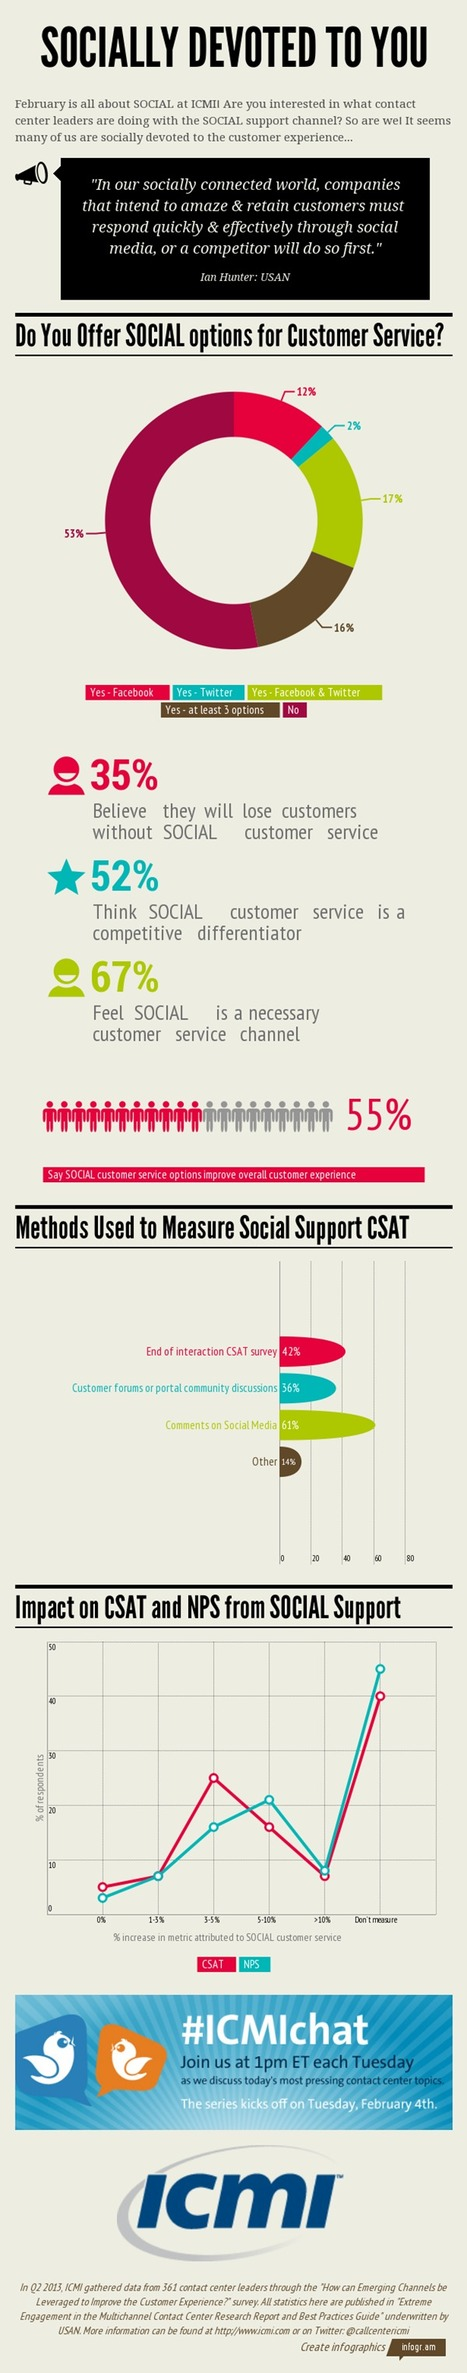 67%: Social Media a Necessary Customer Service Channel | Digital Marketing News & Trends... | Scoop.it